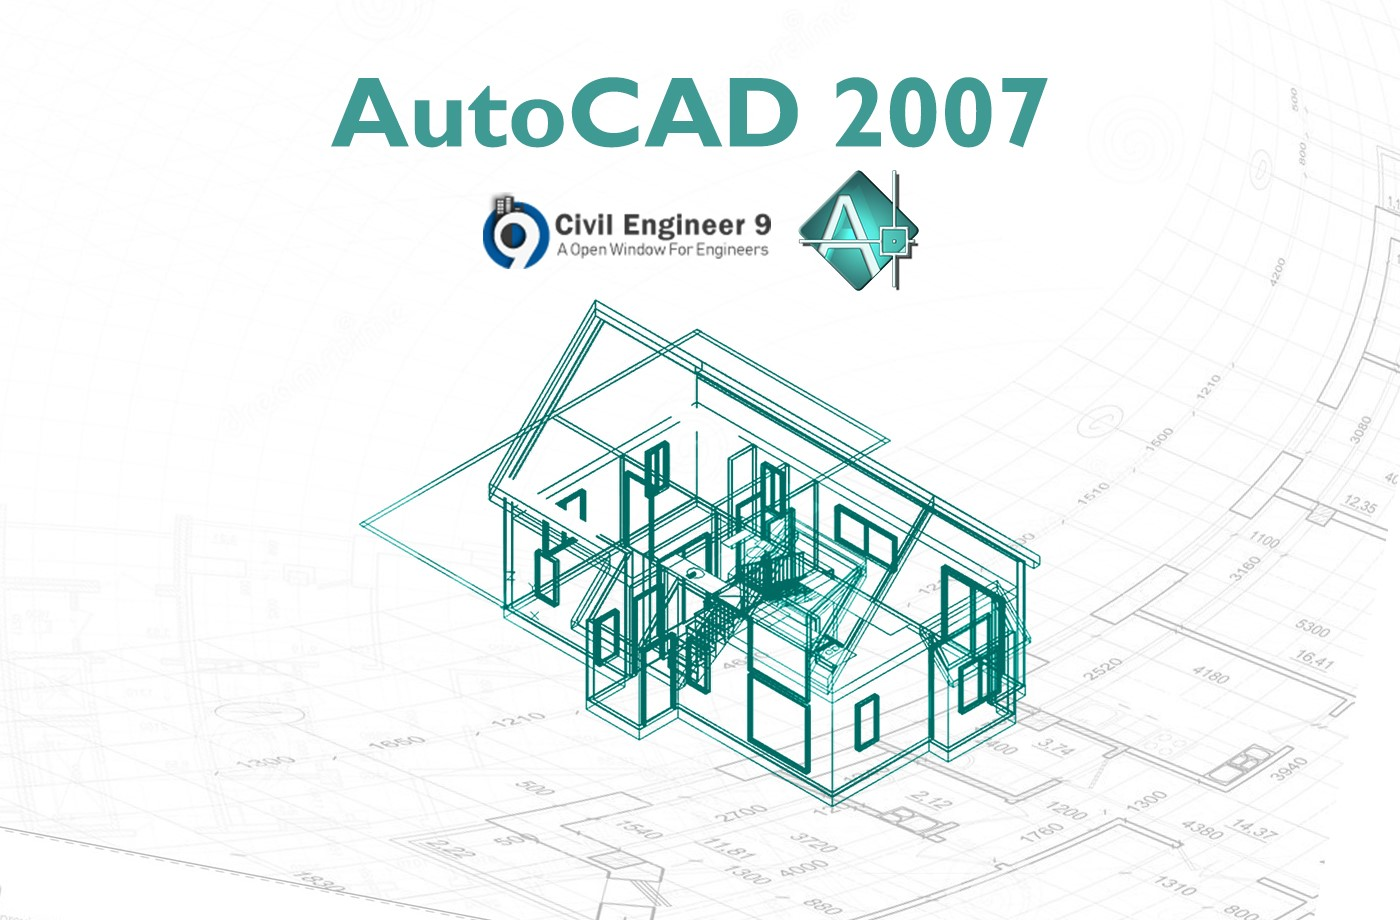 autocad free download 2007 full version